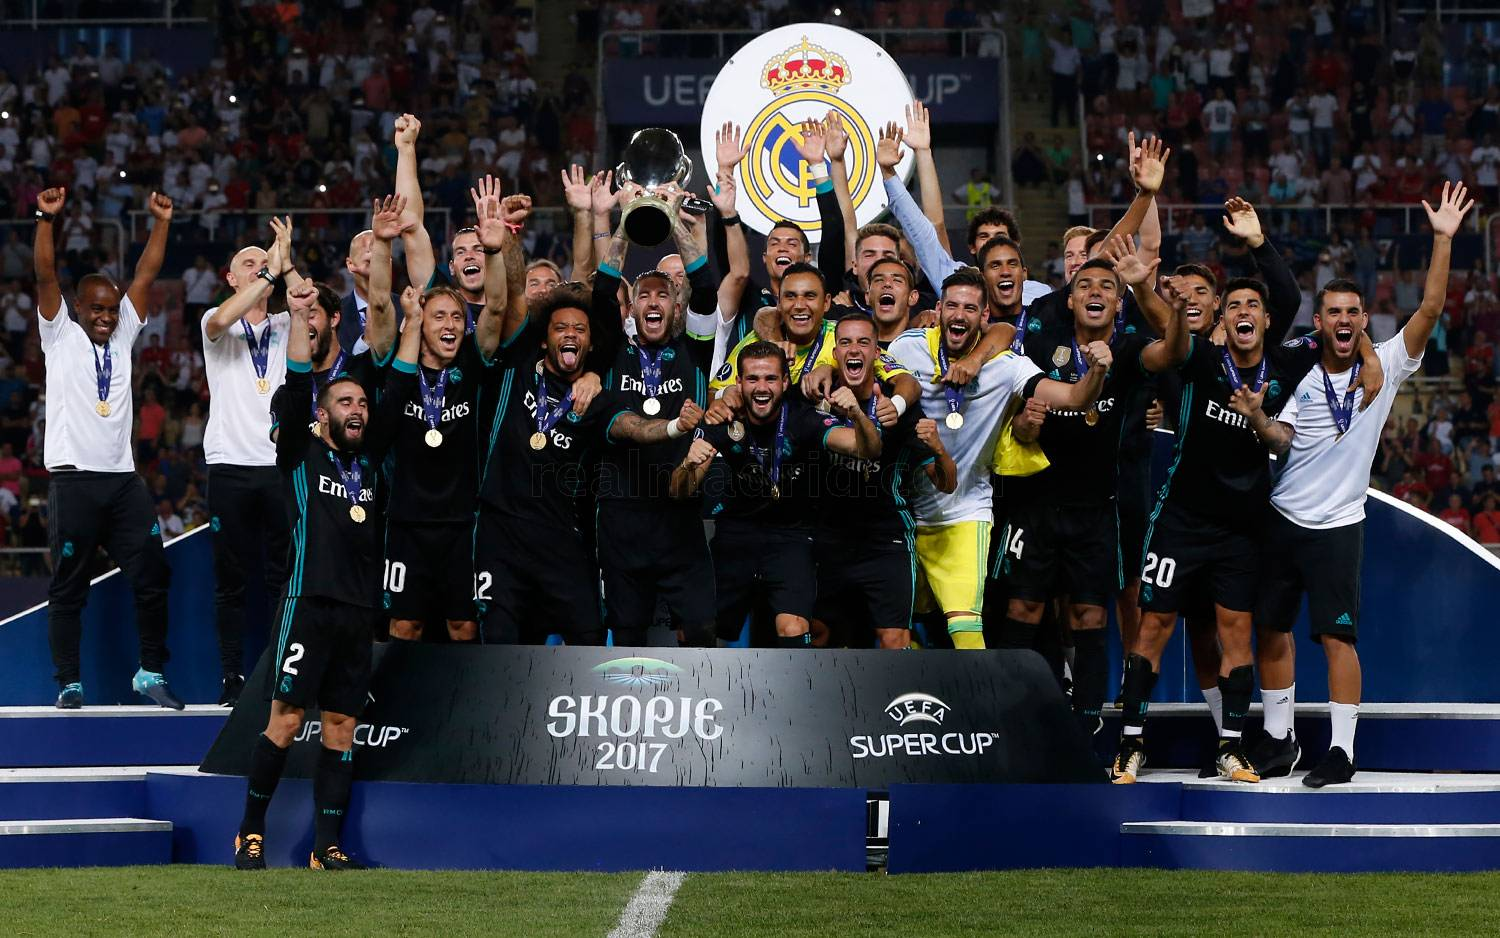 Real Madrid - Con la Supercopa de Europa en Macedonia - 07-09-2020